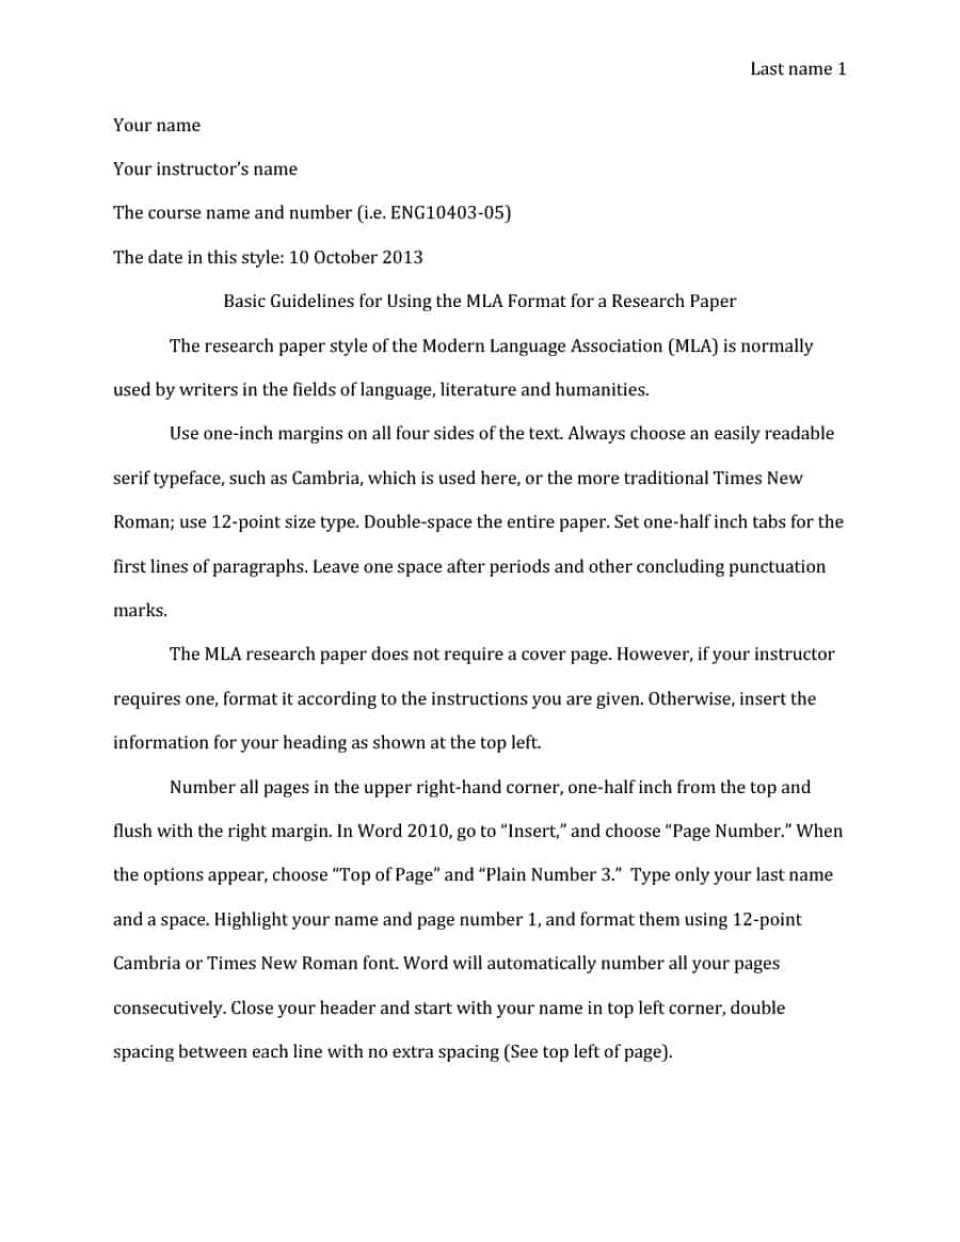 005 Research Paper In Mla Format Template Unbelievable Style Example With Title Page Outline 960